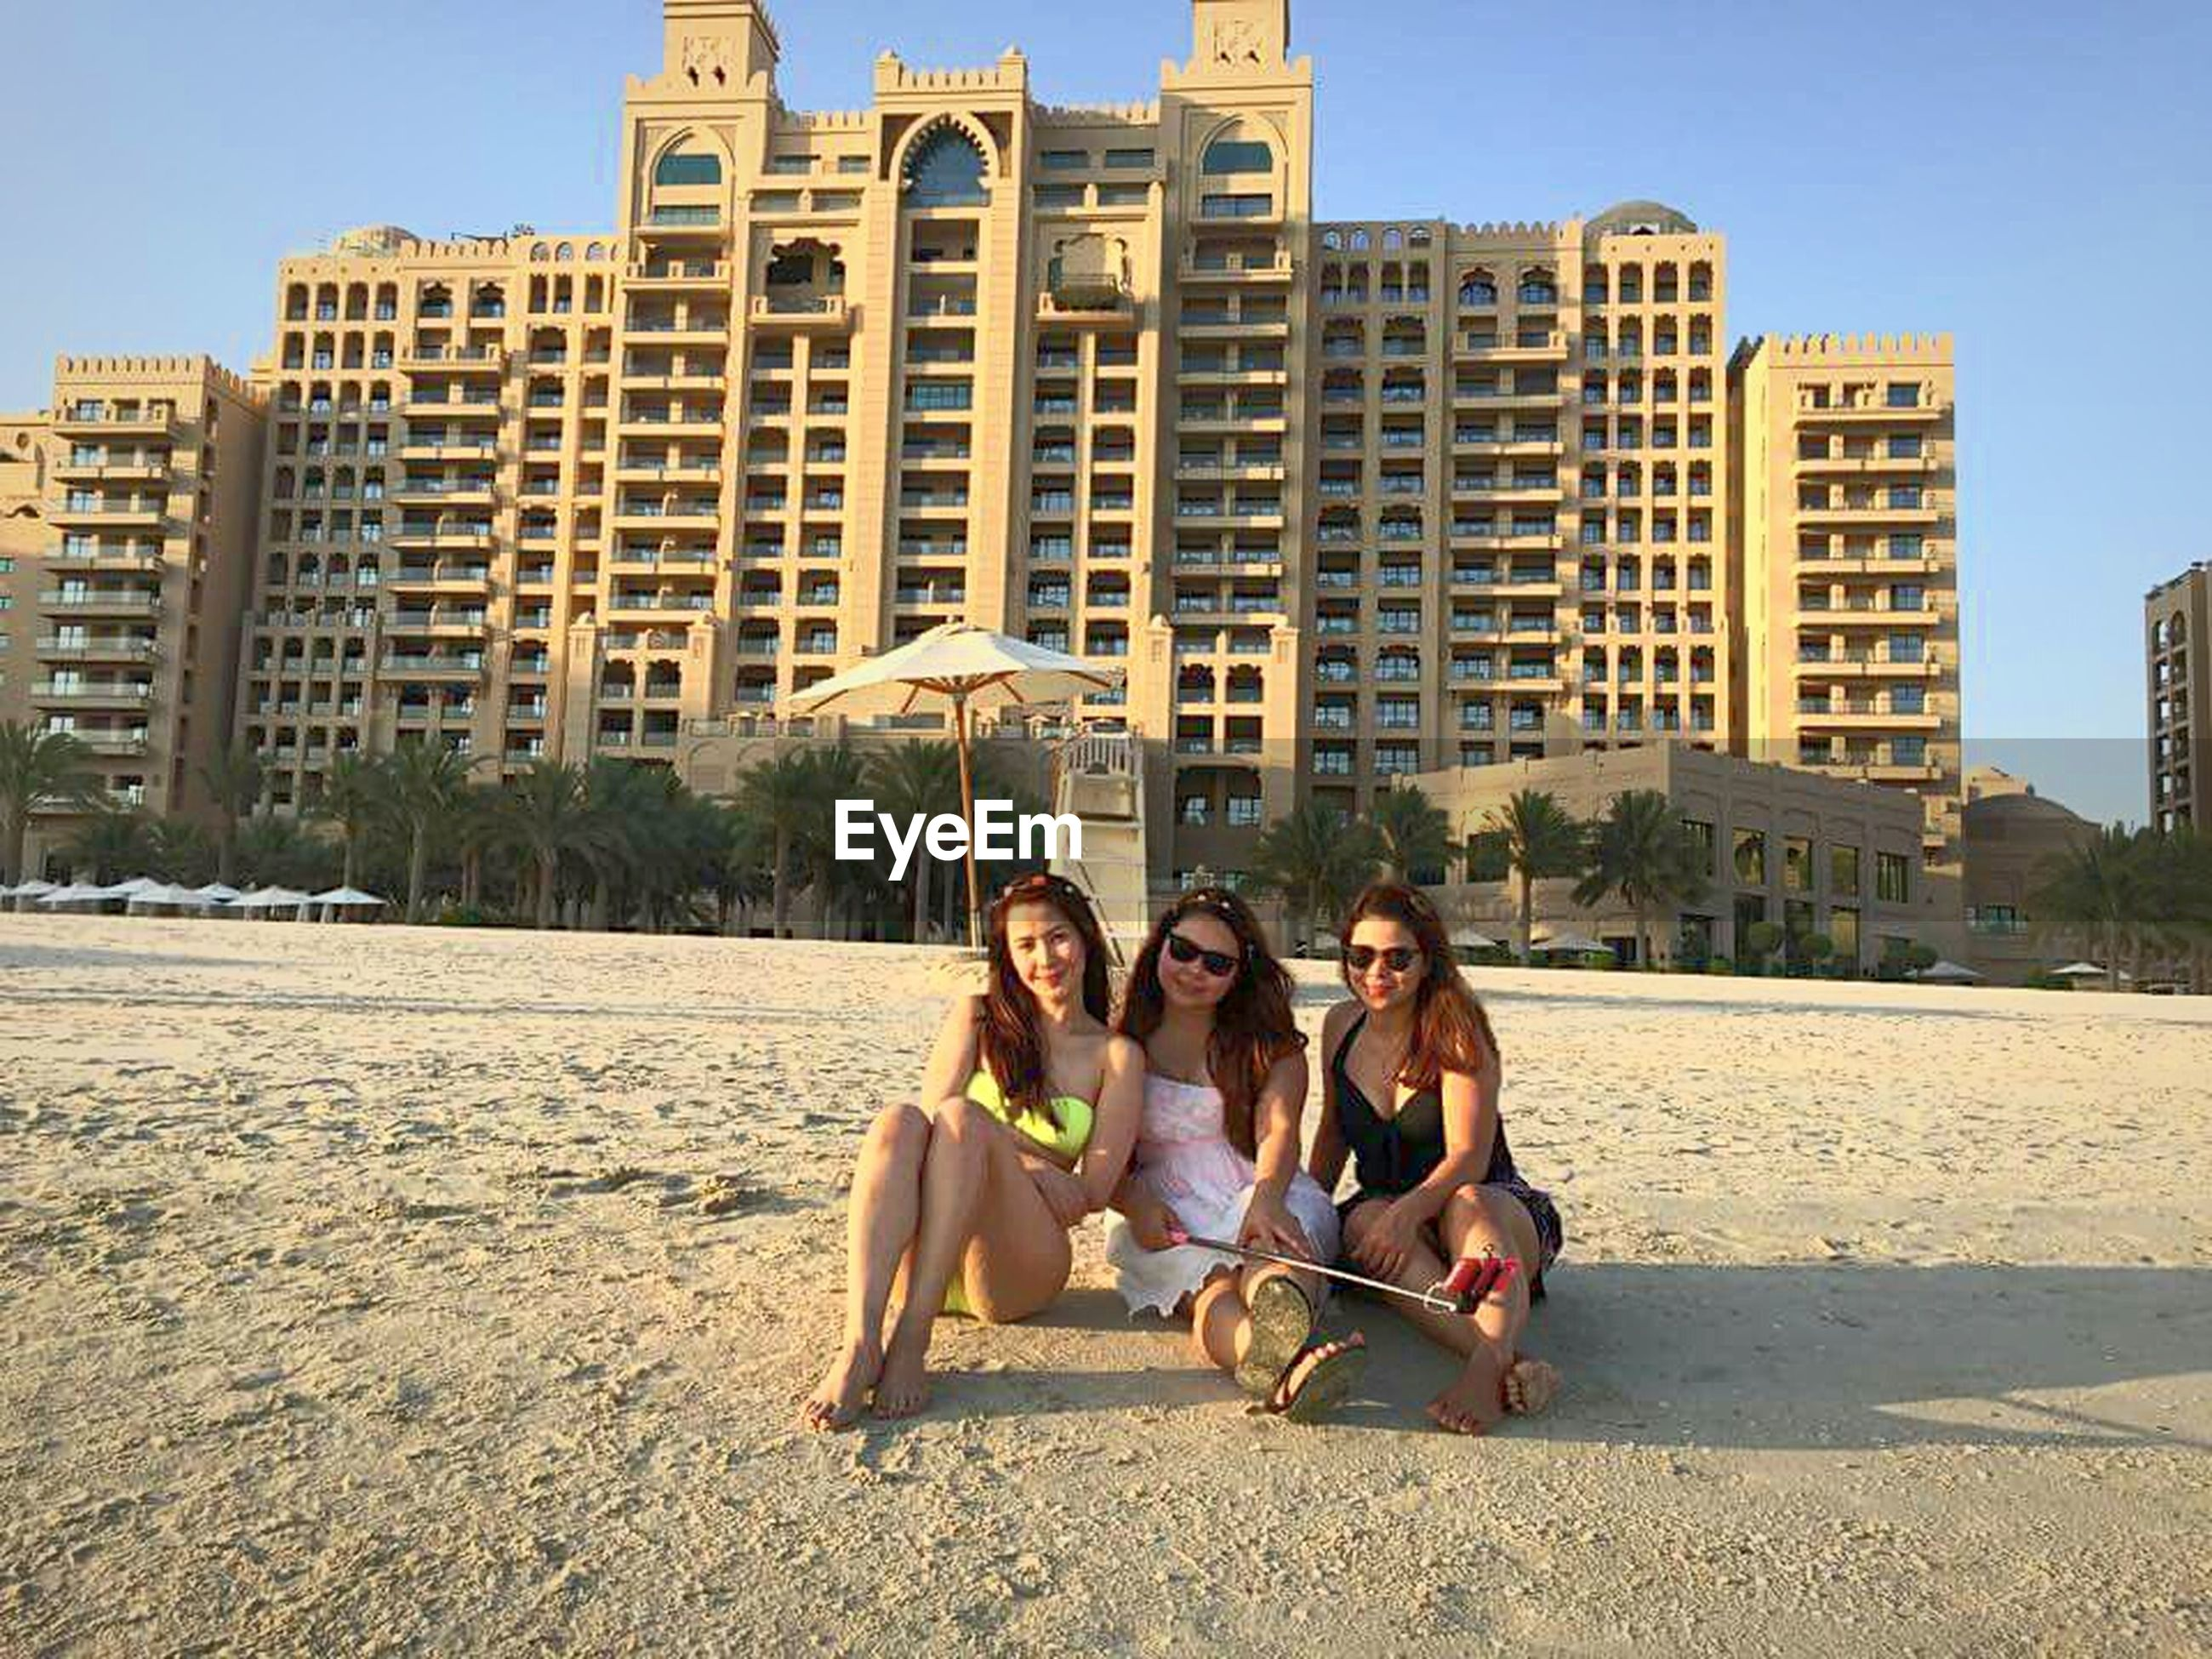 lifestyles, leisure activity, togetherness, building exterior, architecture, built structure, sitting, bonding, full length, casual clothing, relaxation, love, person, men, young adult, vacations, friendship, sunlight